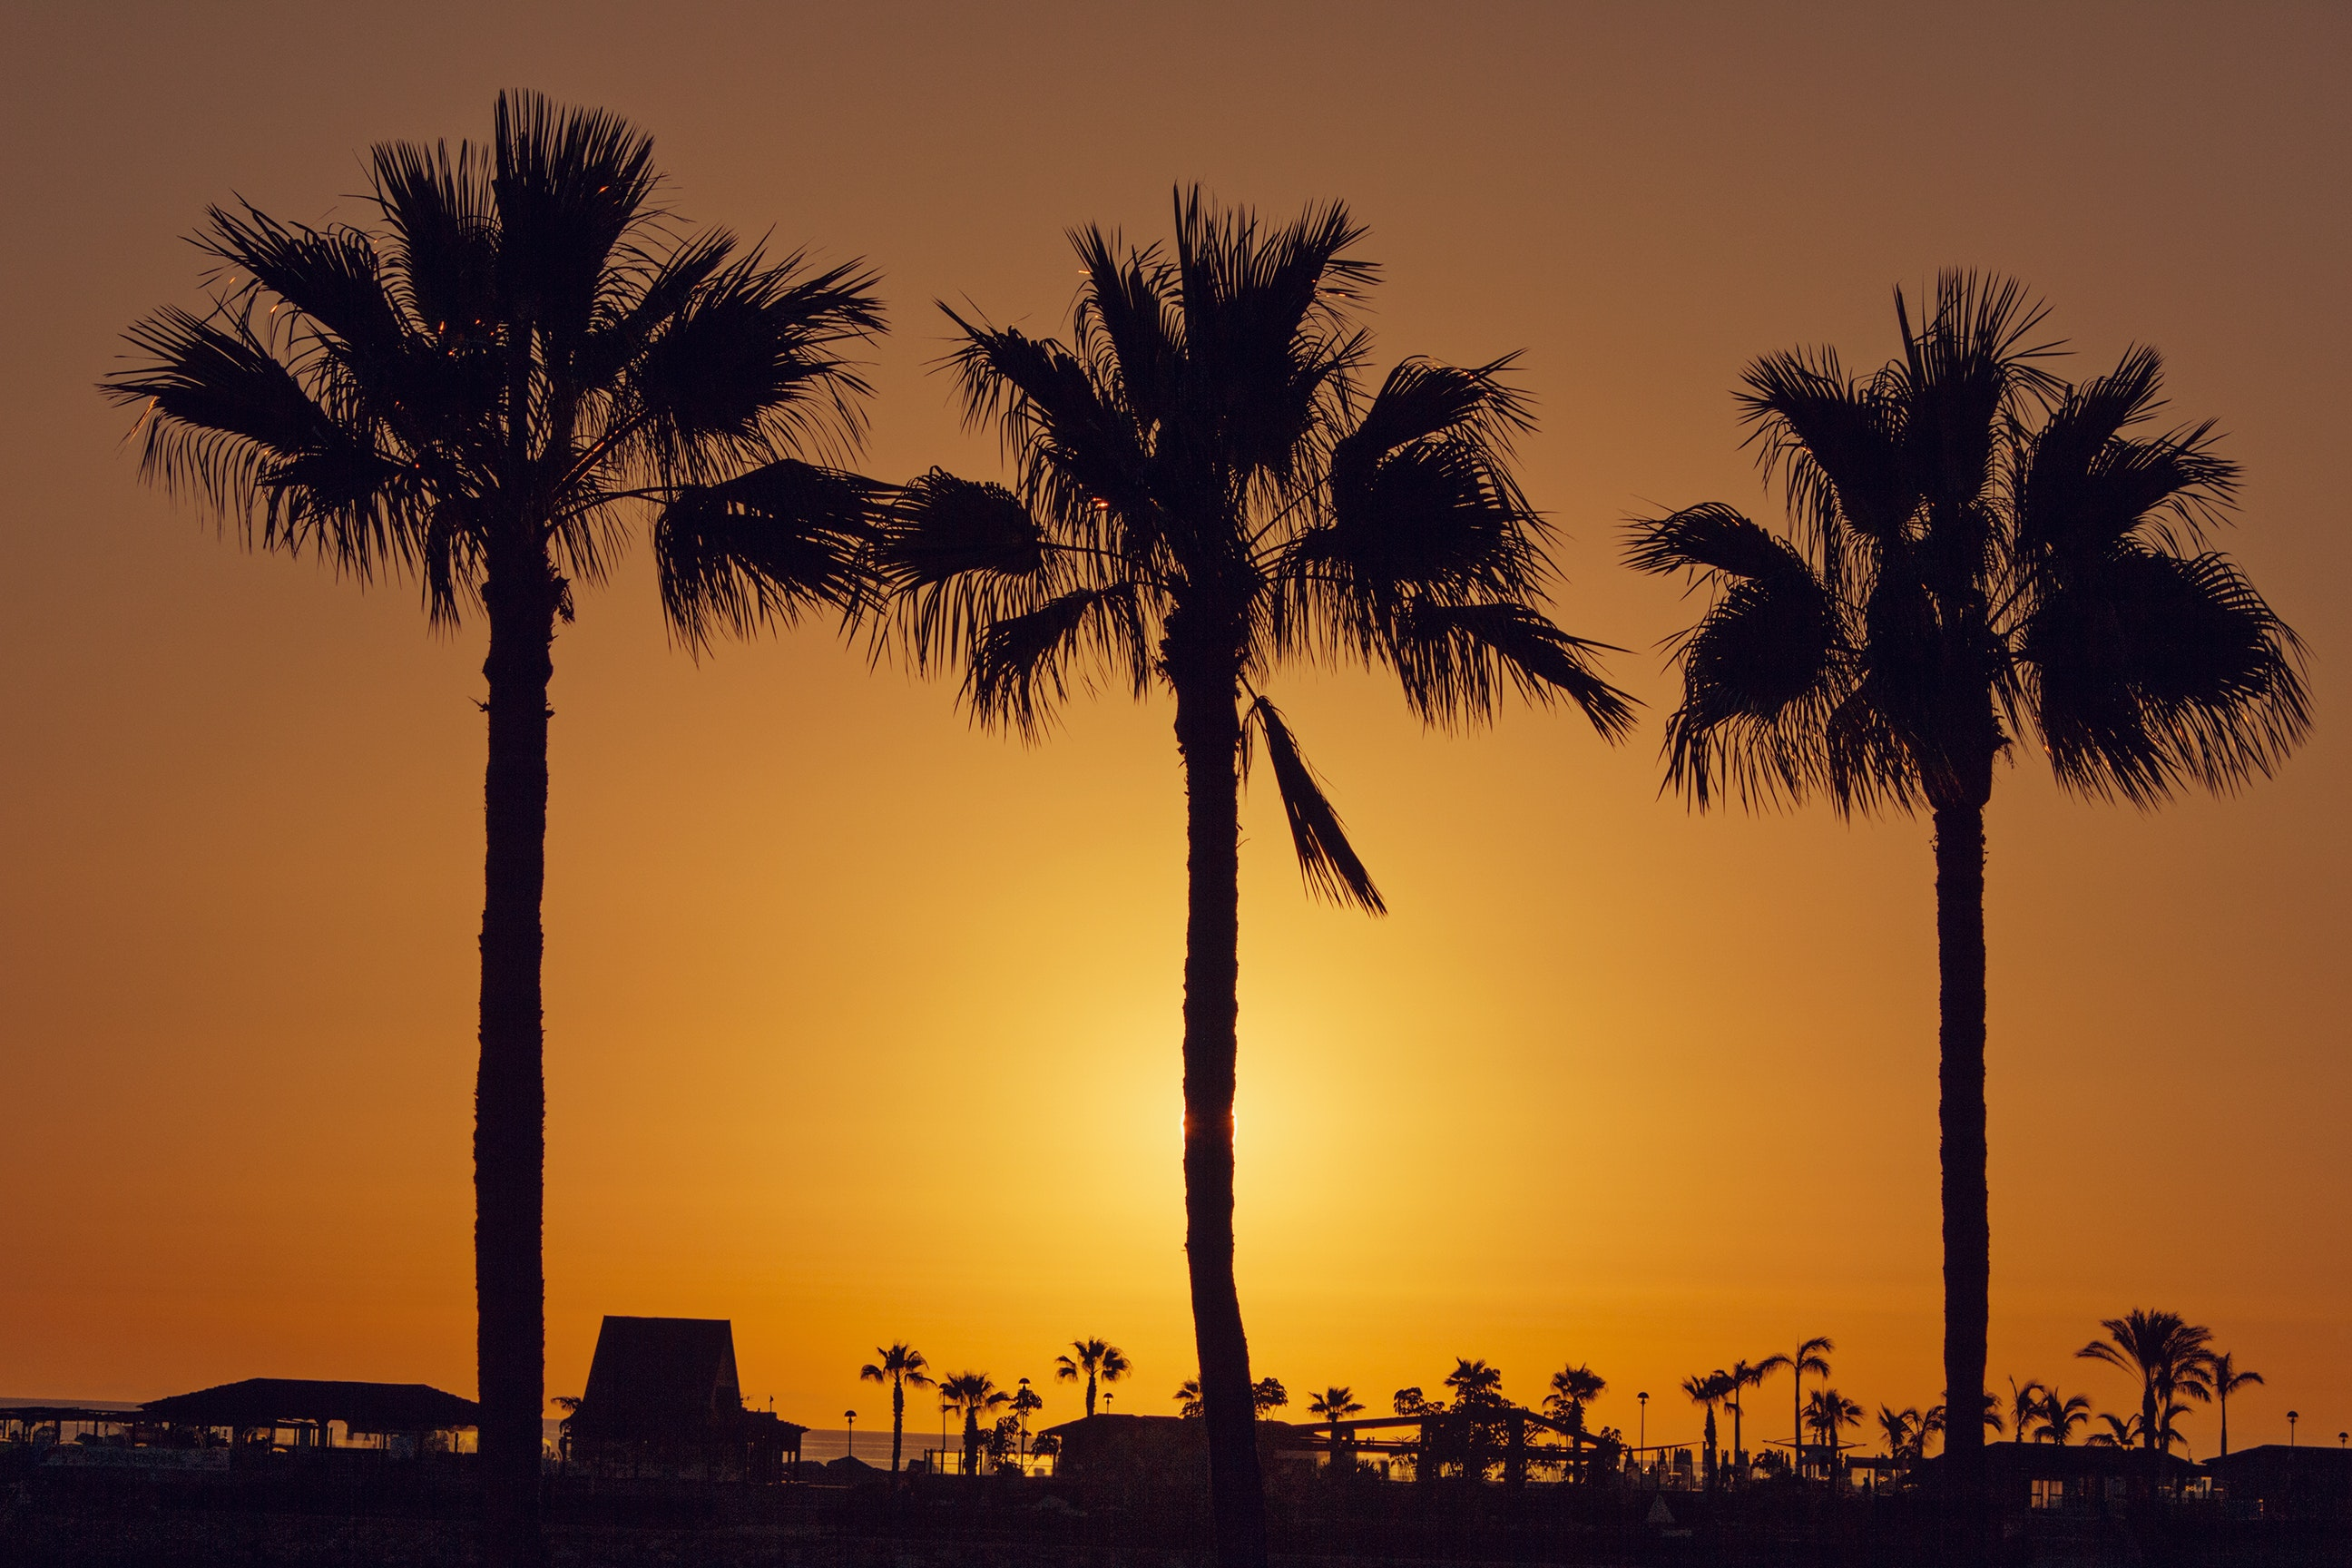 Silhouette Palm Trees on Beach Against Sky, Sand, Vacation, Tropical, Sun, HQ Photo